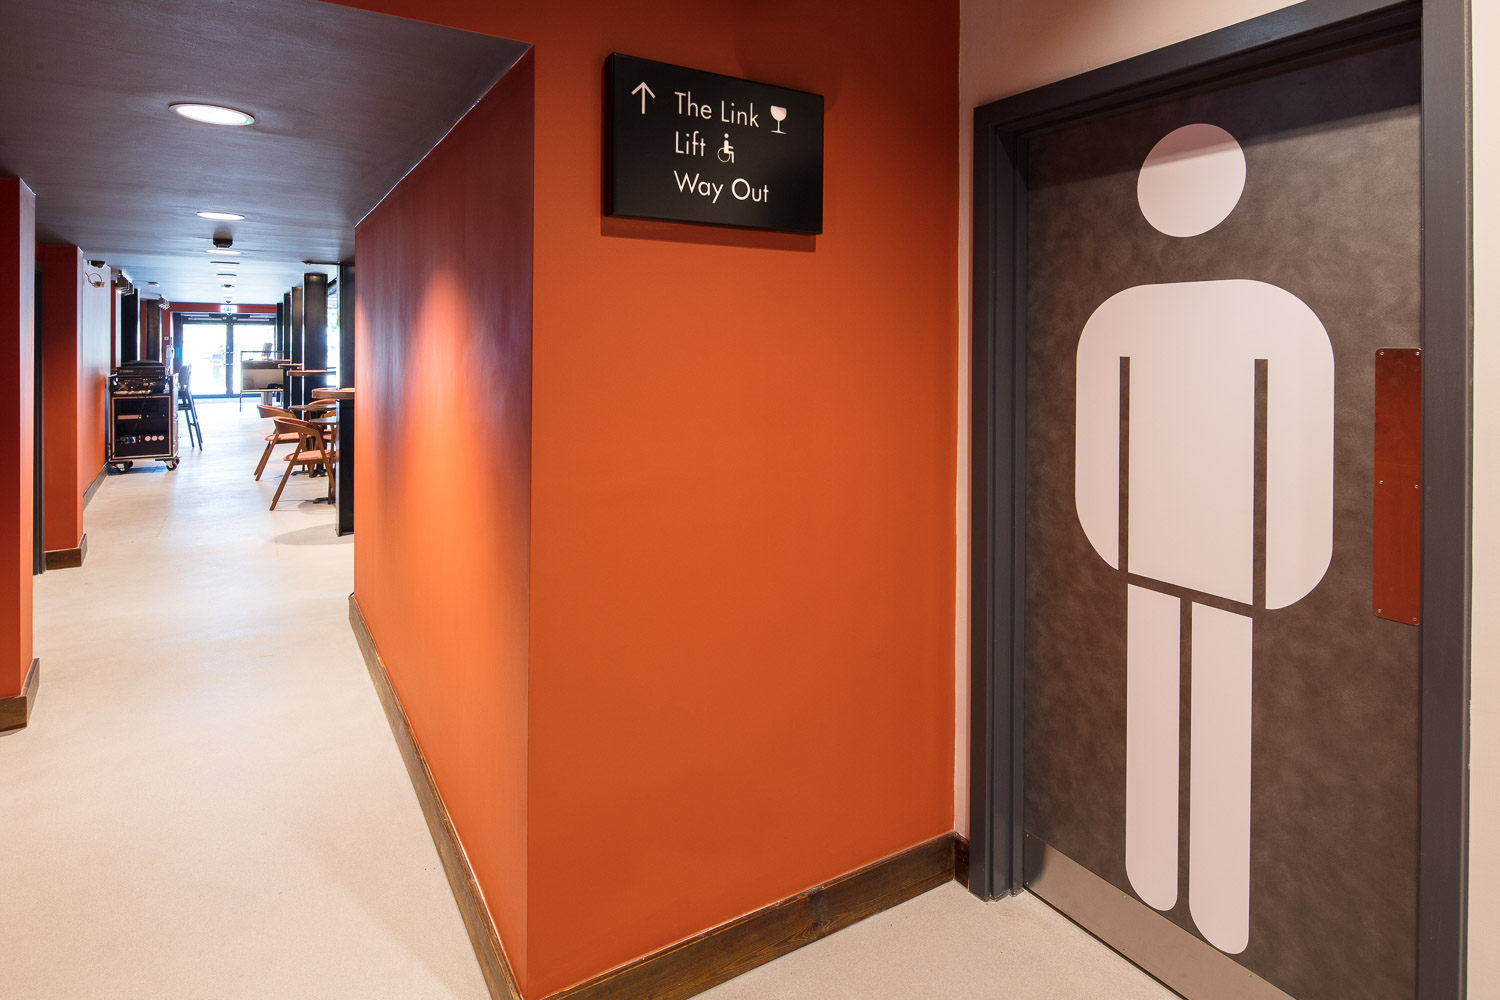 The Link toilet signage and wayfinding